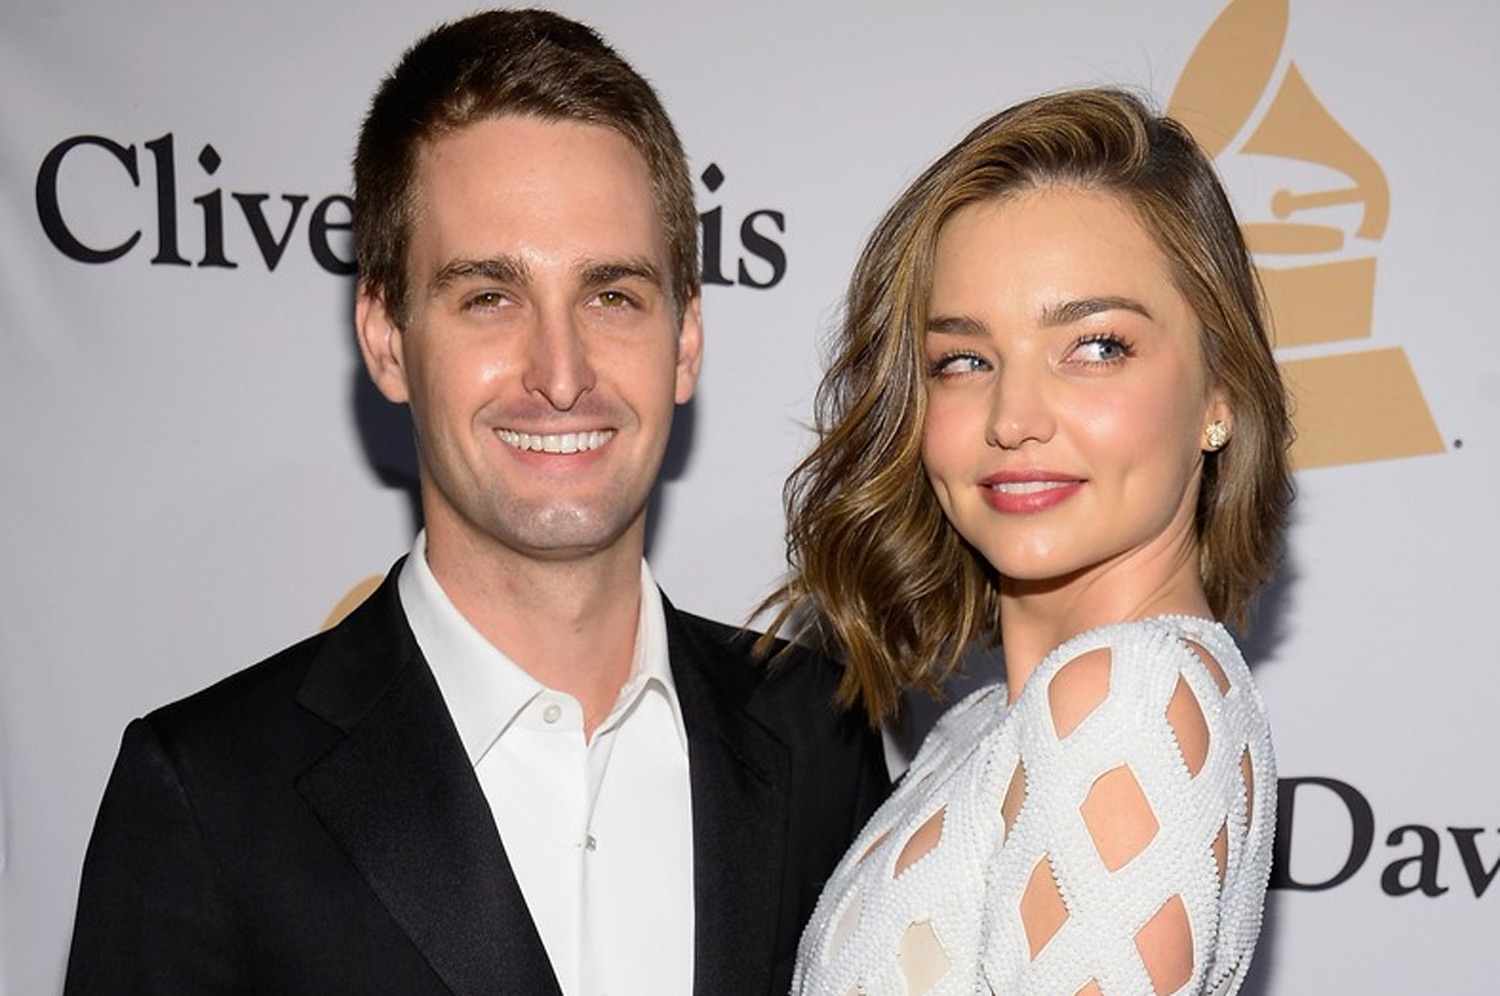 Image: Miranda Kerr and Evan Spiegel